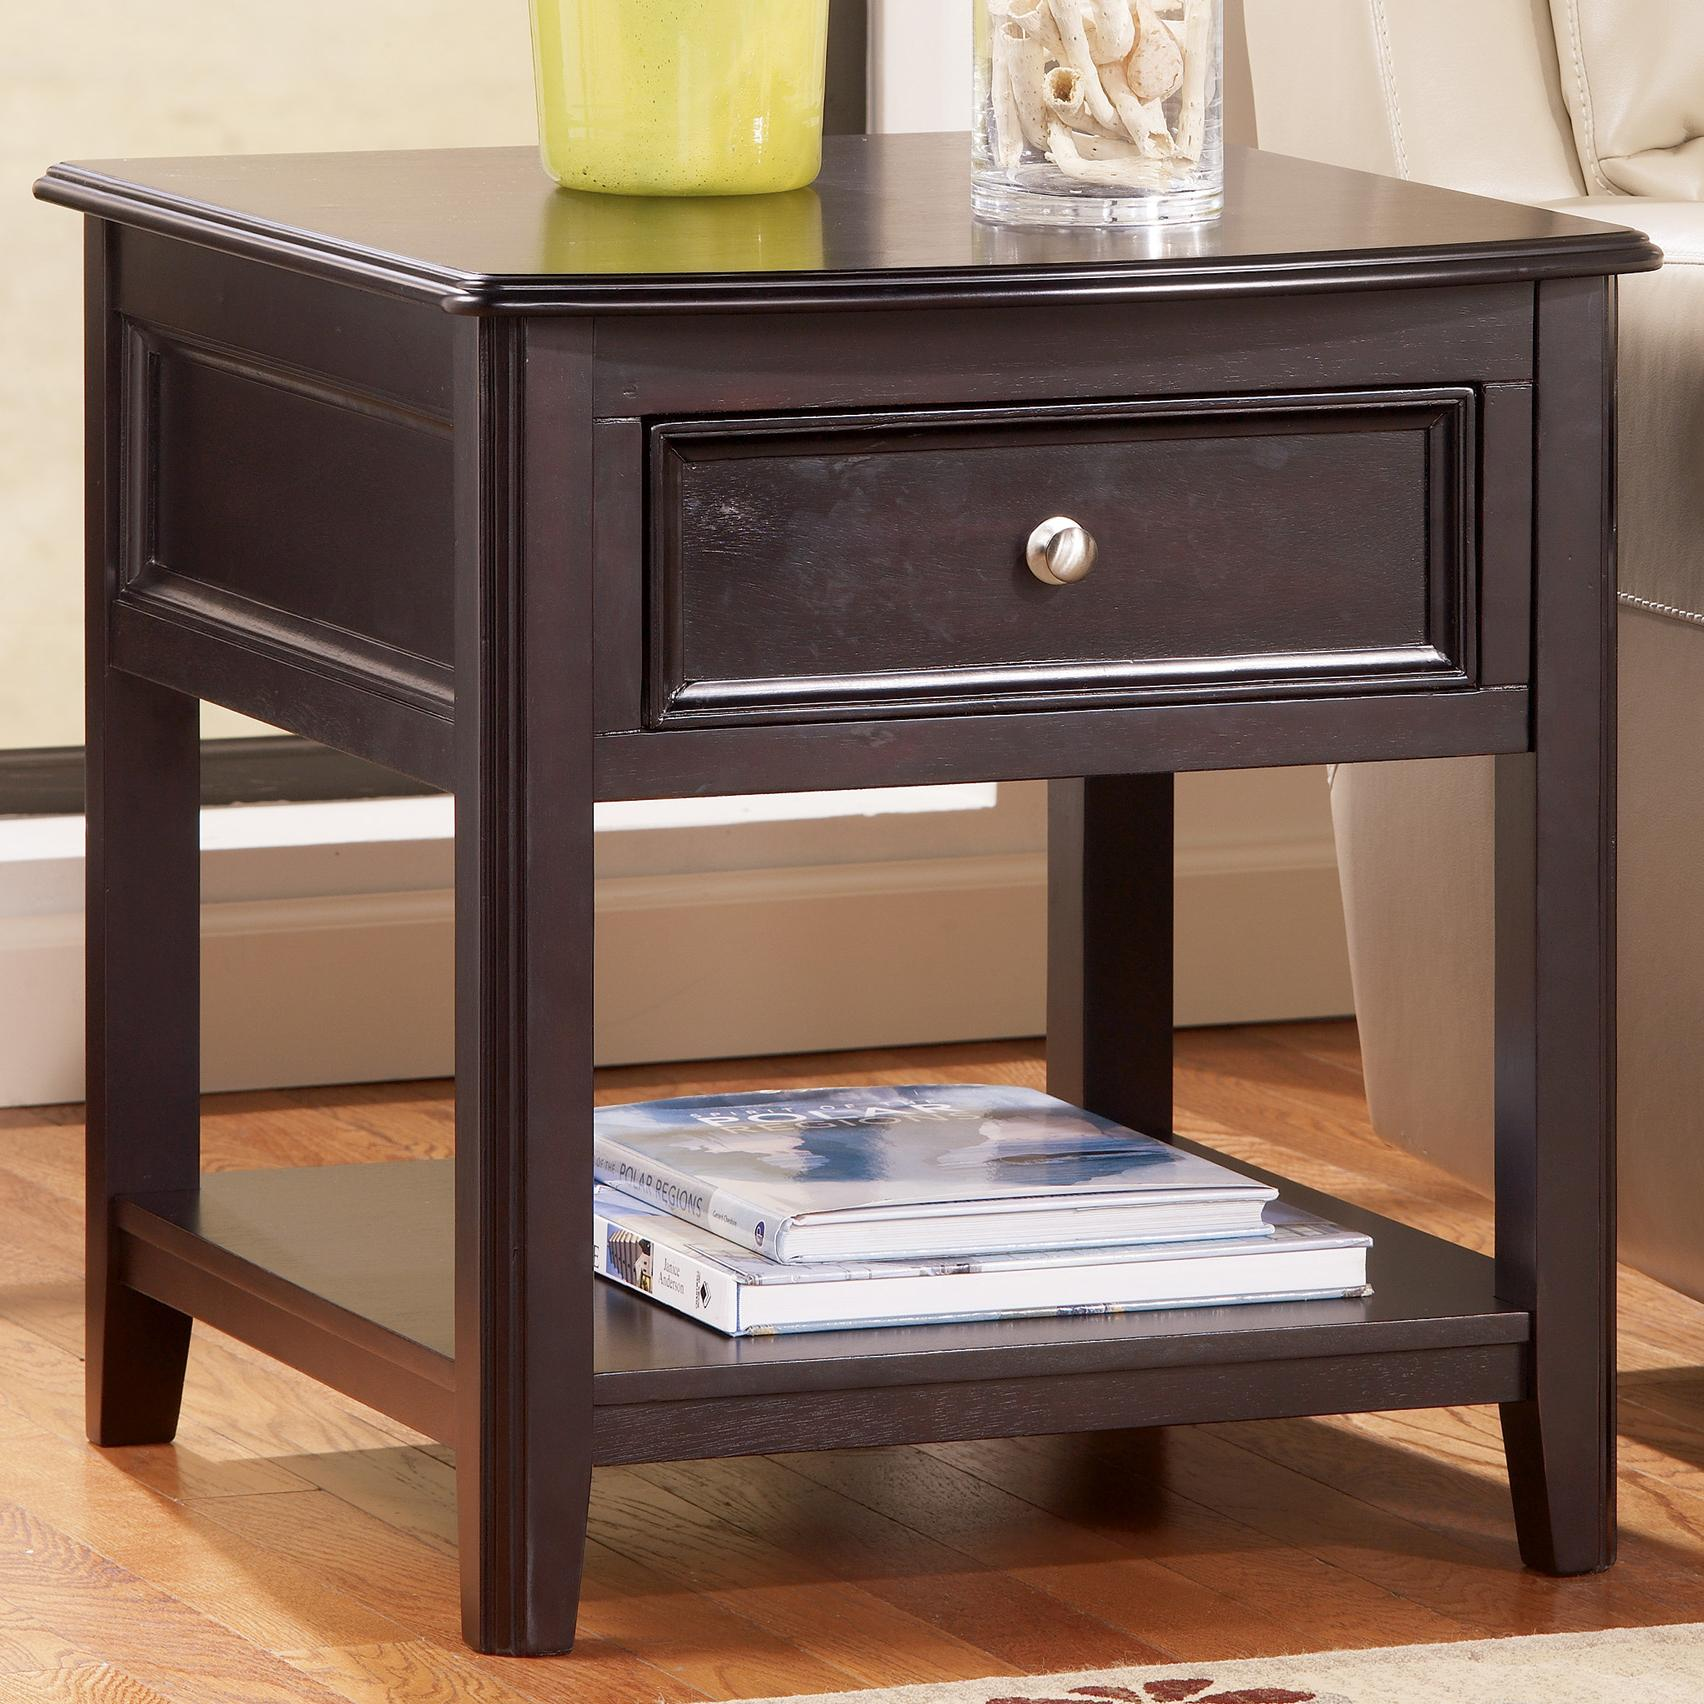 Small Black End Table Rectangular End Table With Drawer And Bottom Shelf By